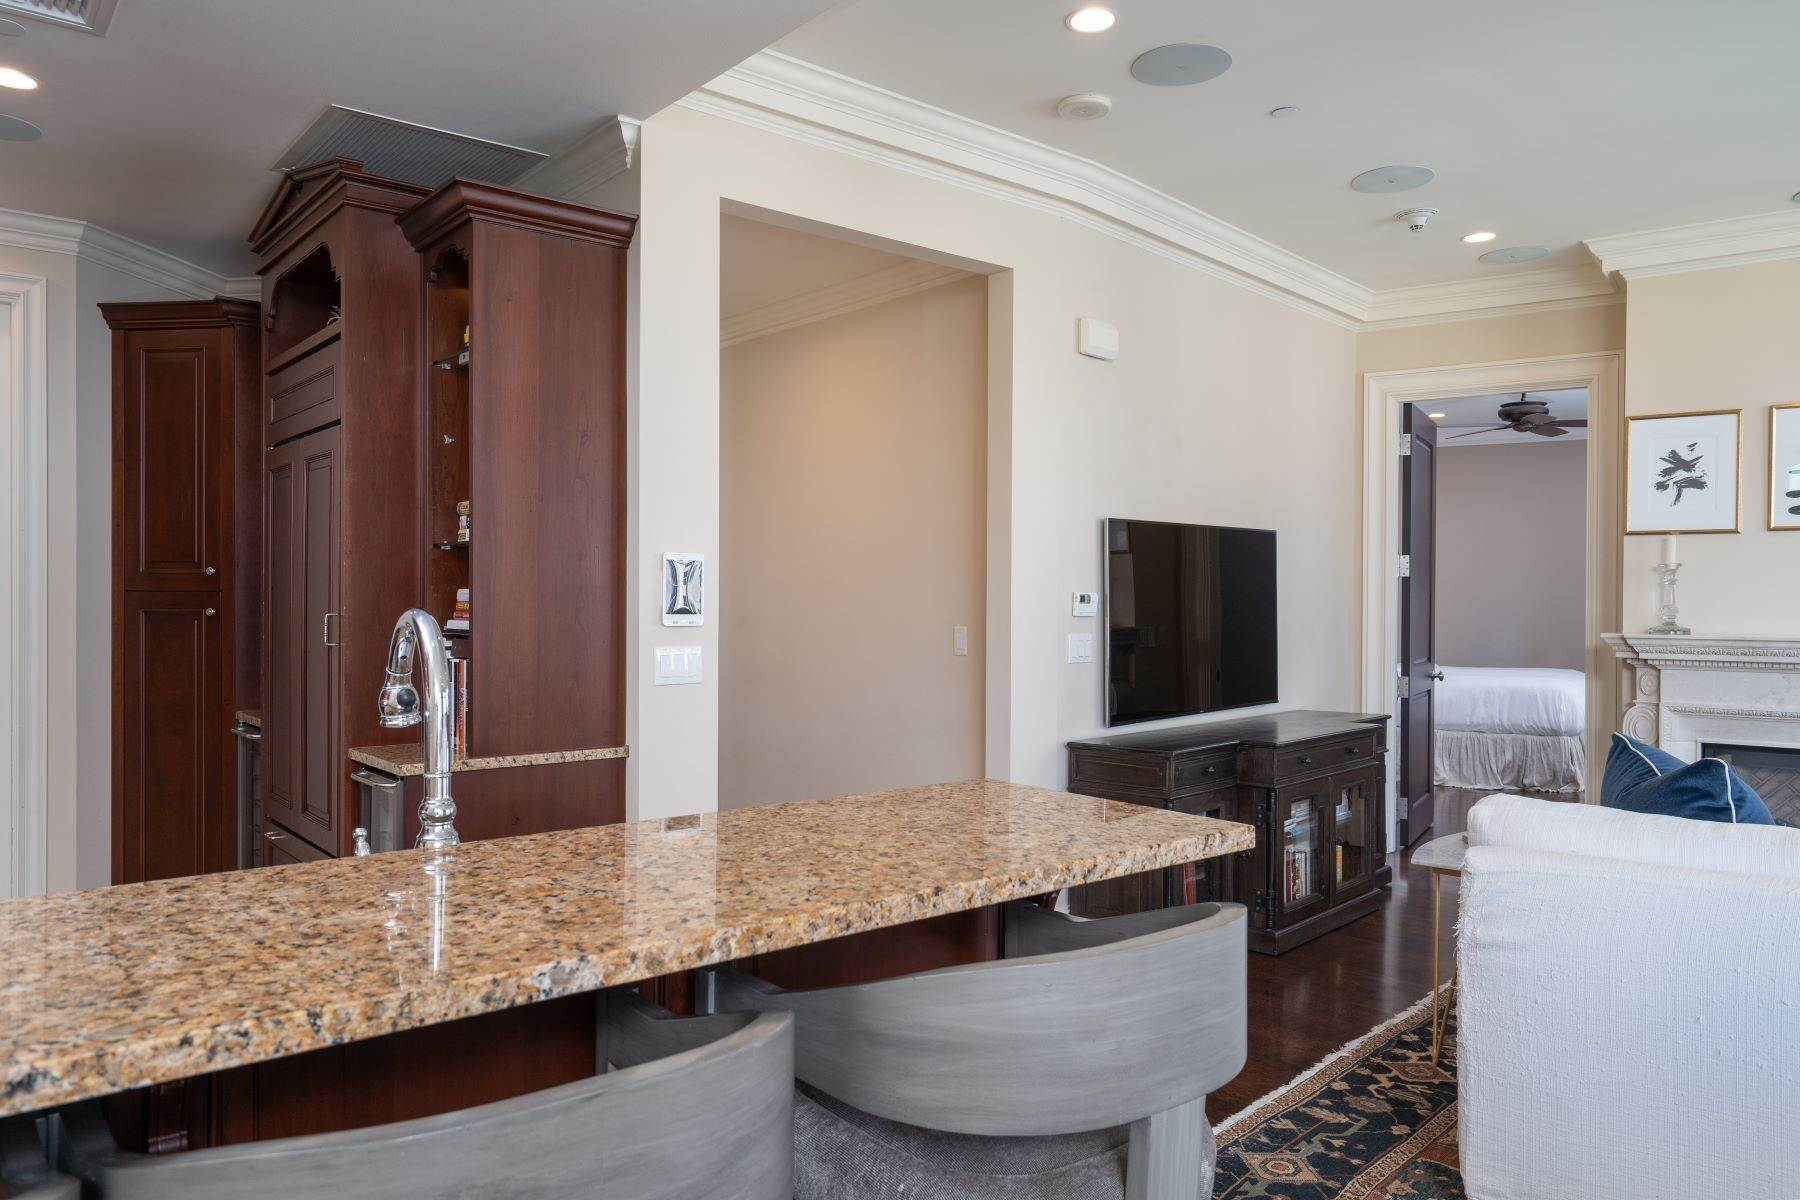 16. Condominiums for Sale at Ritz-Carlton Luxury and Convenience 2555 N. Pearl Street, #1004 Dallas, Texas 75201 United States